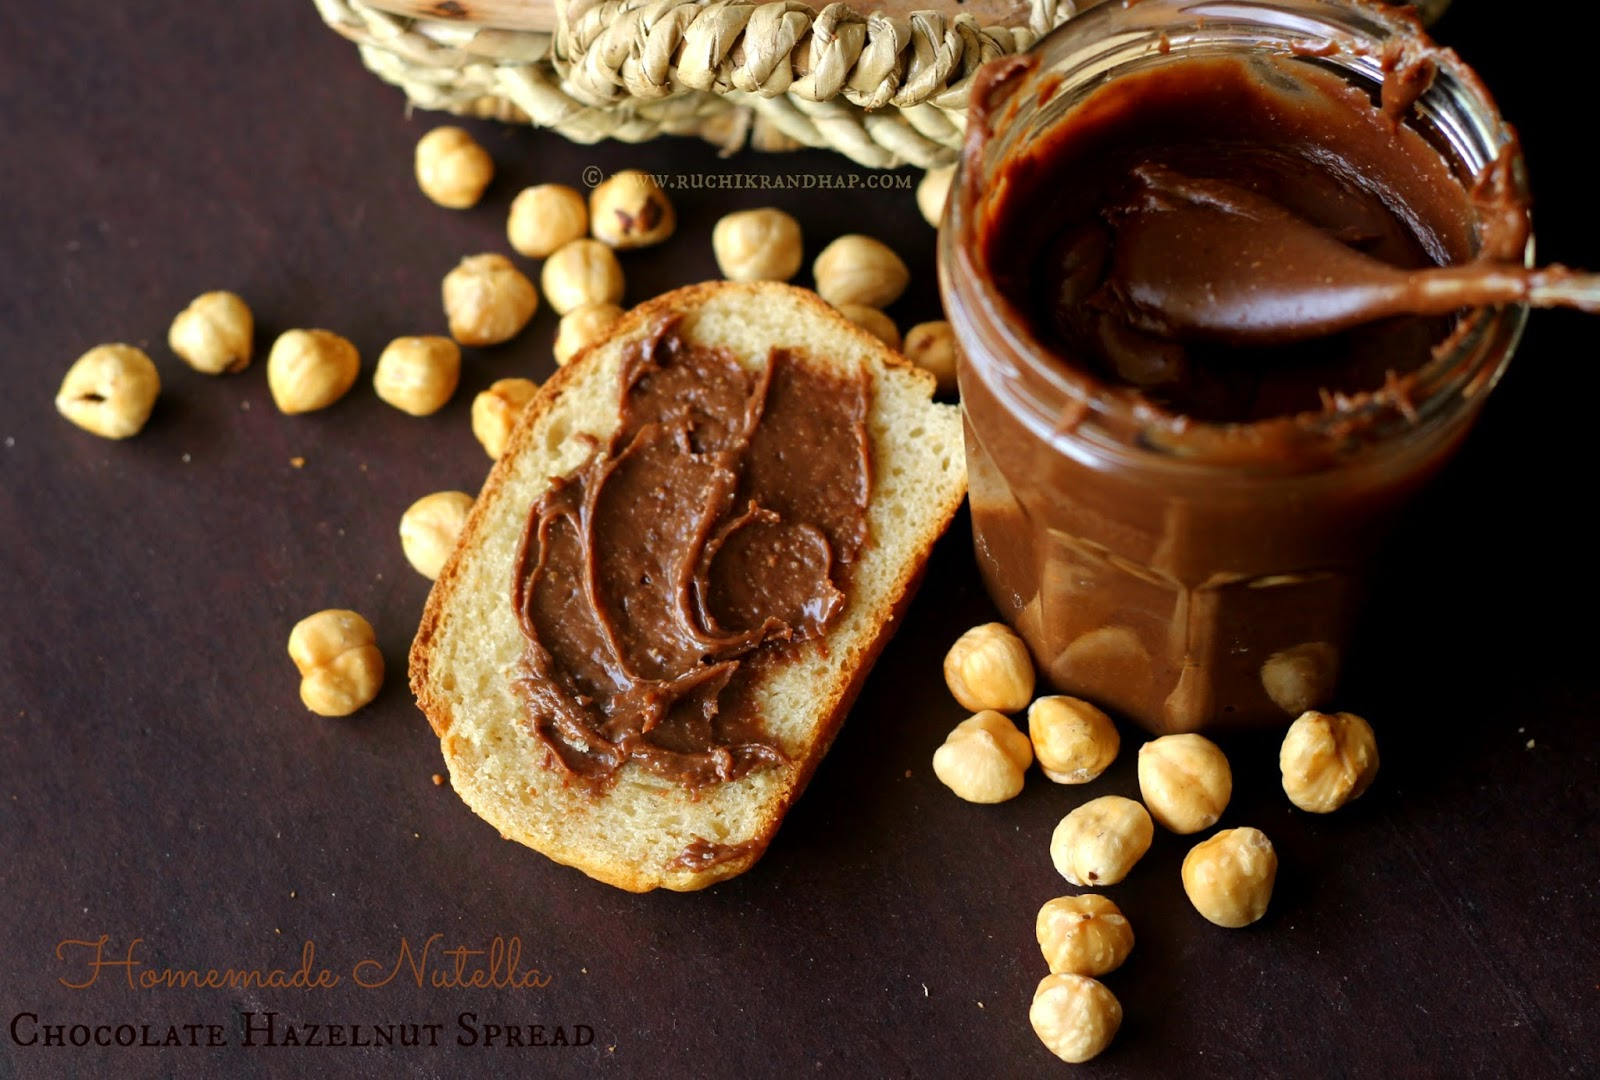 ... Homemade Nutella (Chocolate Hazelnut Spread) ~ Just Takes 3